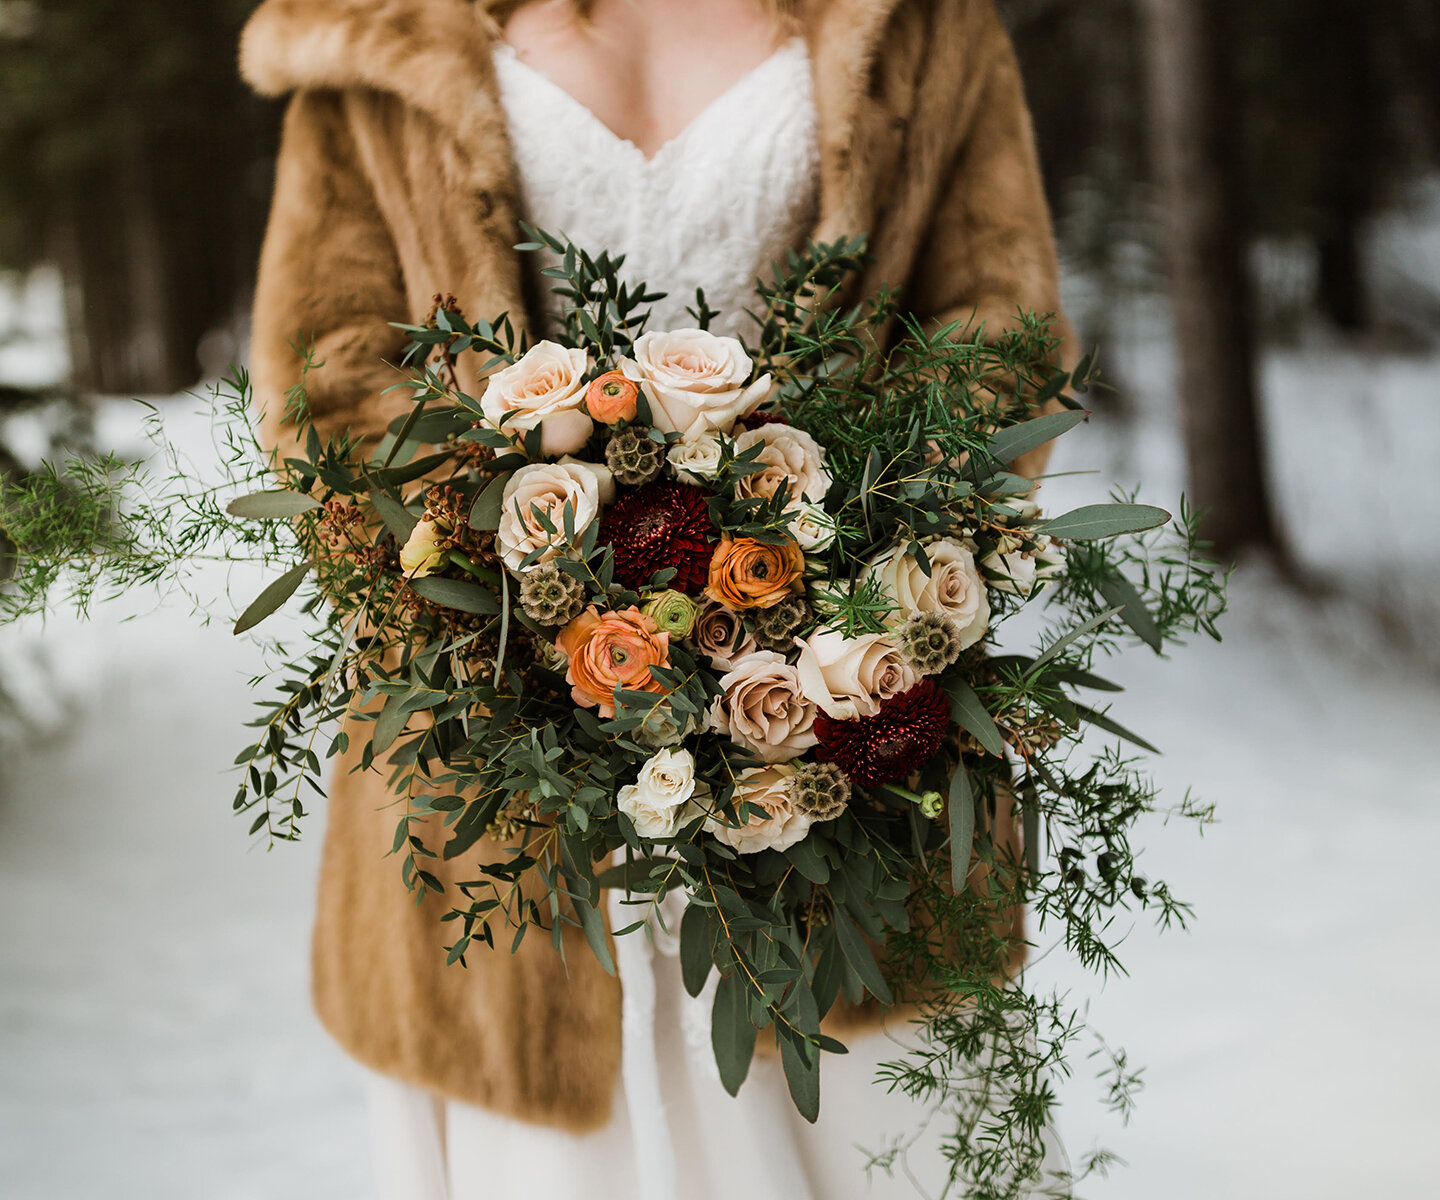 Bridal Bouquet Inspiration for Winter: 18 of the Prettiest Bouquets For Every Winter Wedding Style